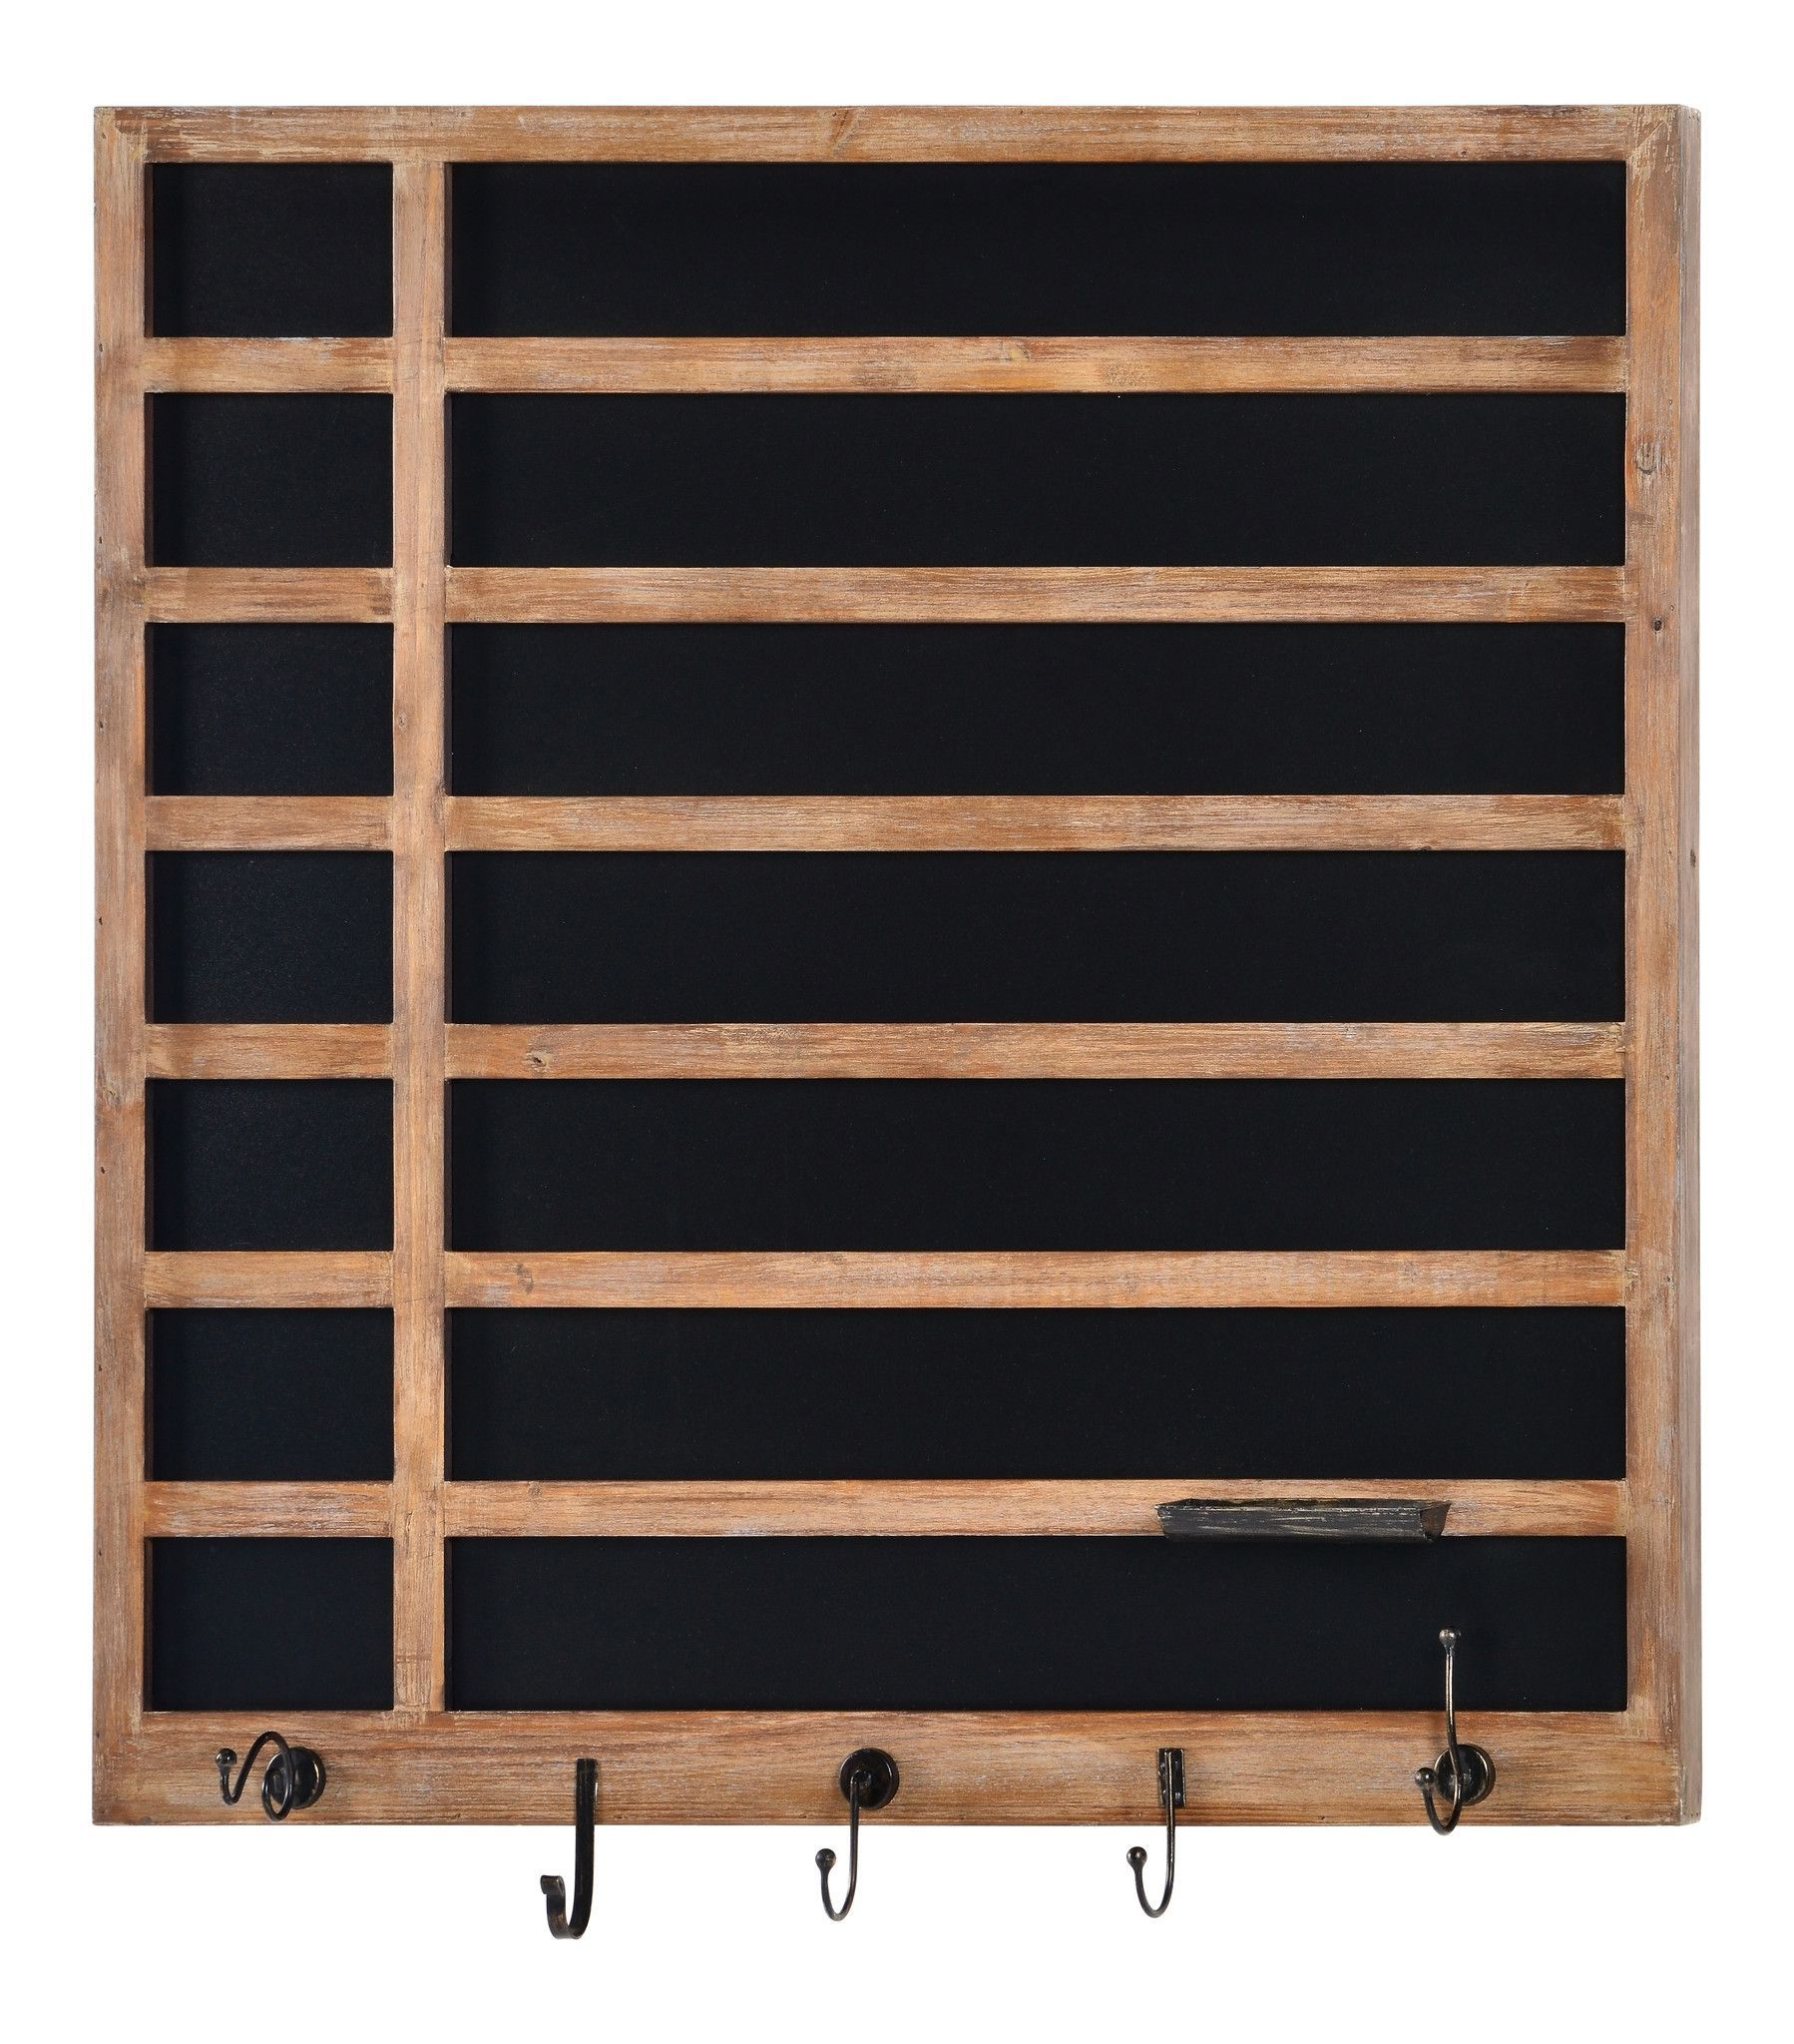 Twill chalkboard natural wood with bronze metal hooks products